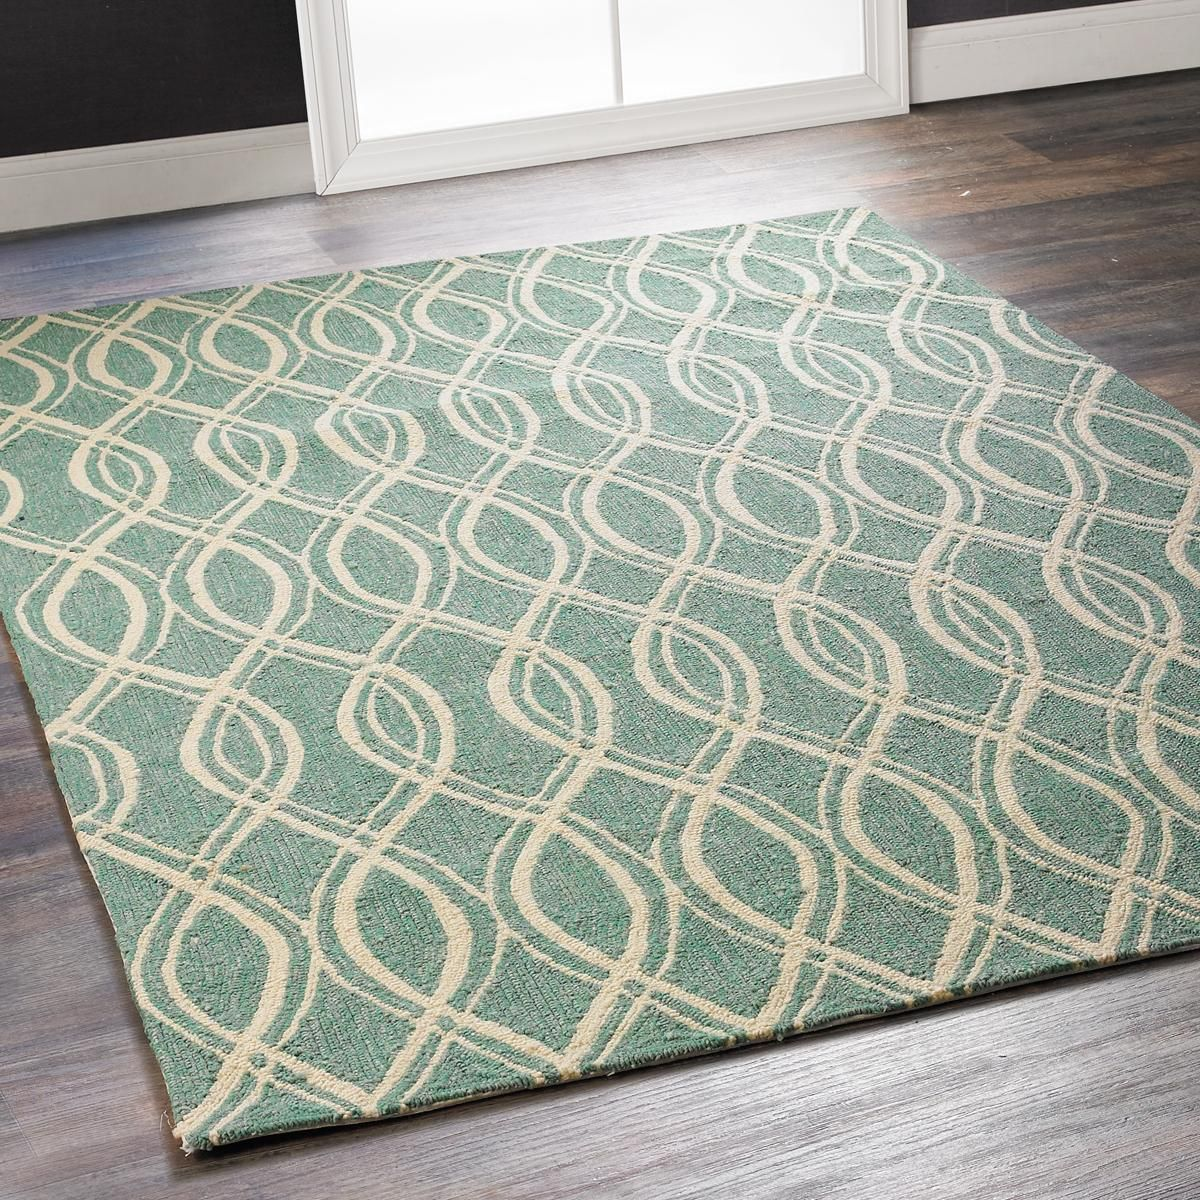 Aqua Oval Lattice Indoor Outdoor Rug N Soothing Tones Of And Ivory This Graceful